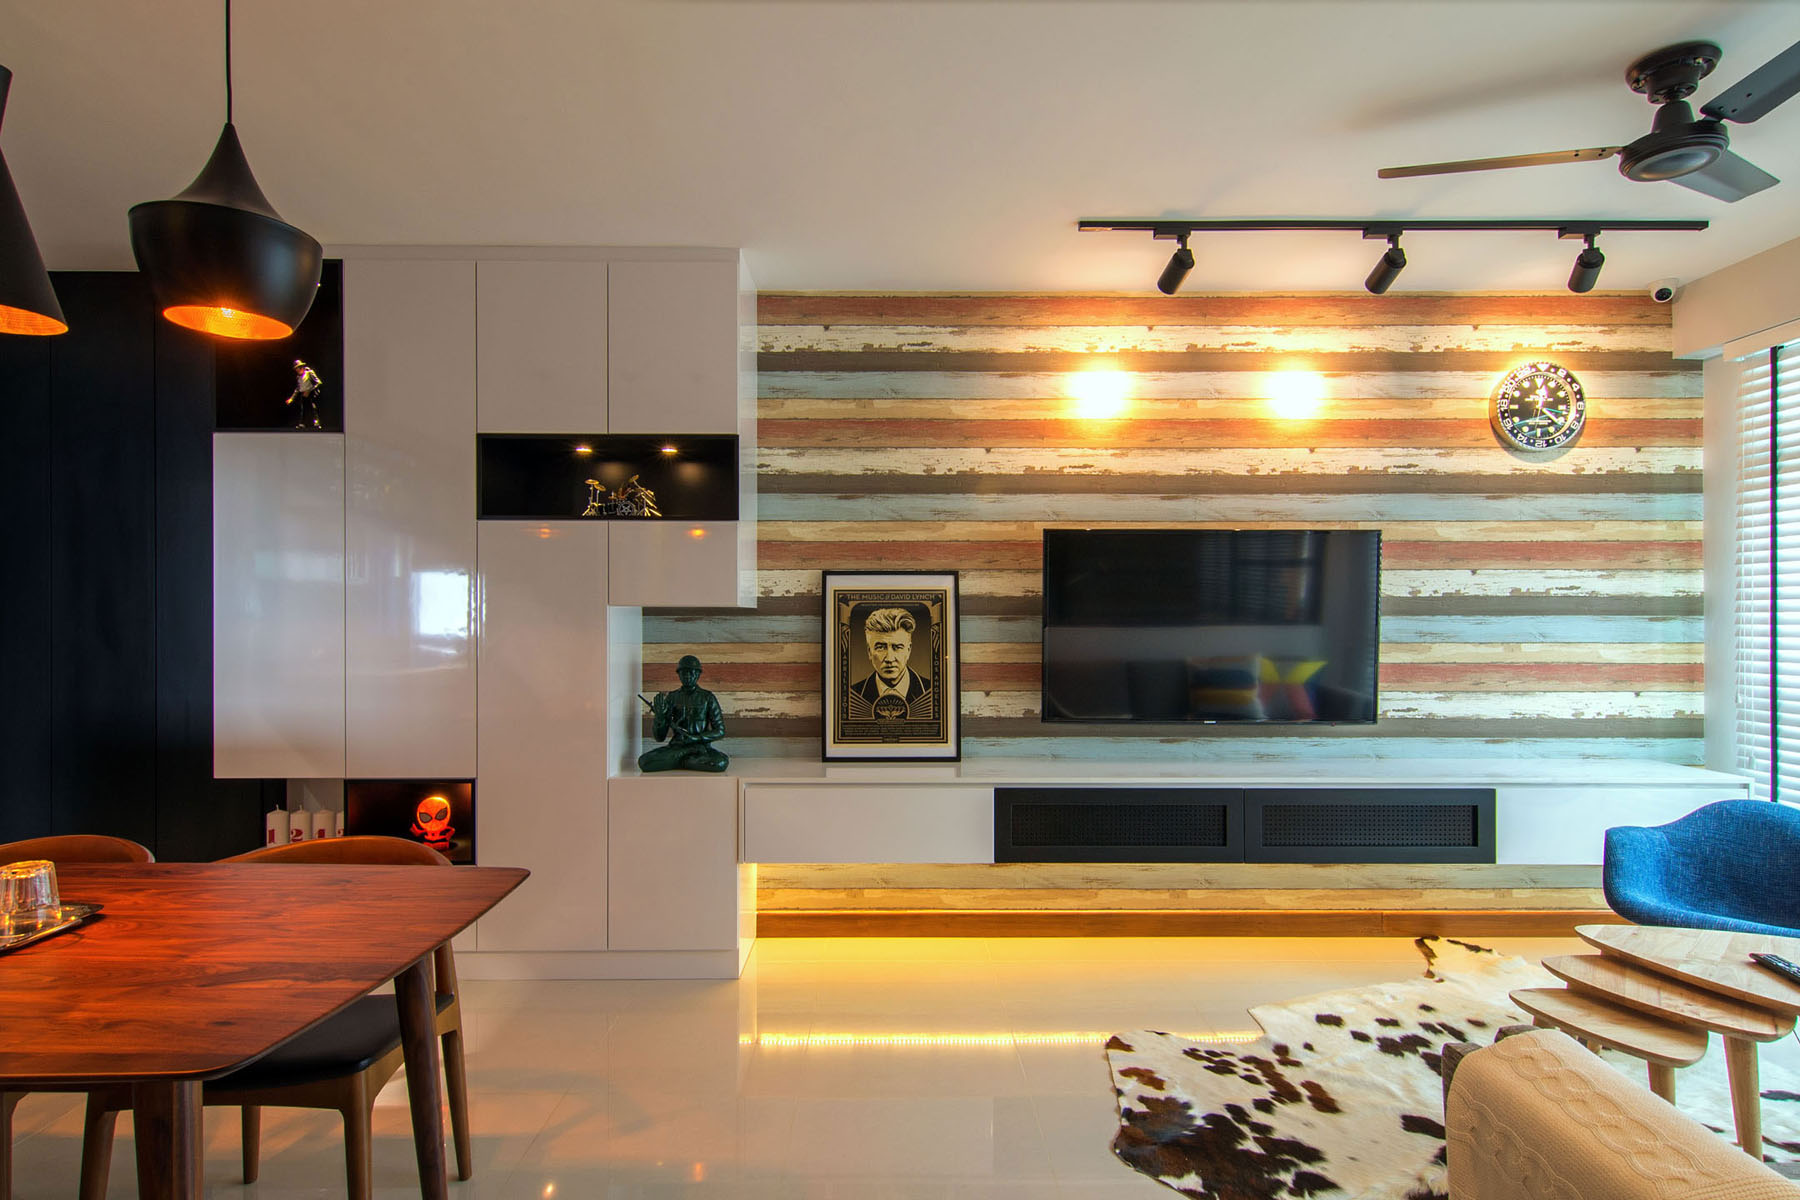 Cozy apartment in singapore with stylish elements